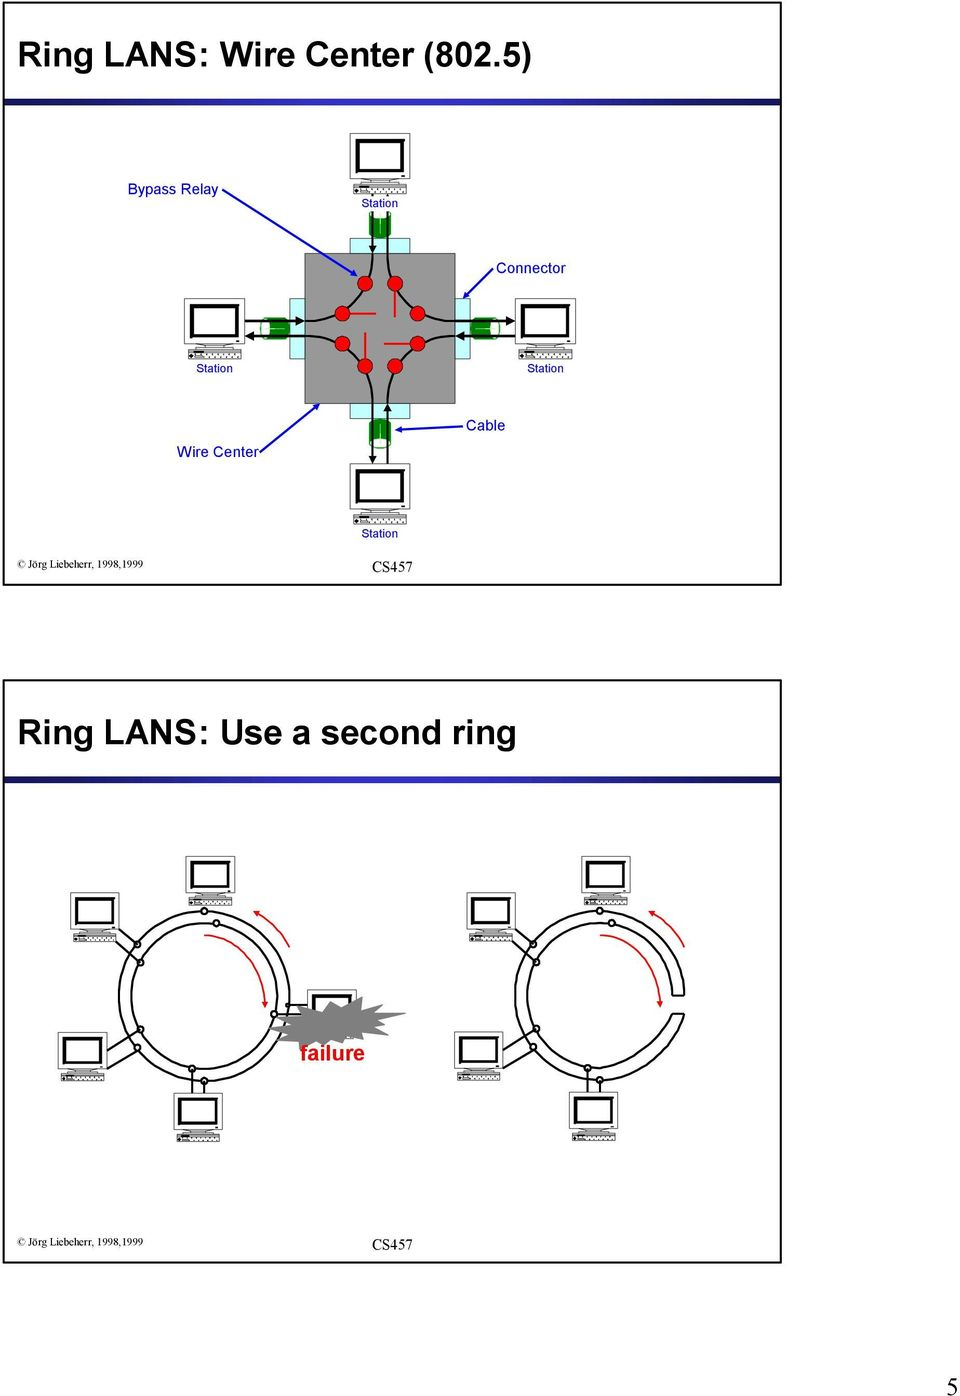 Wire Center Cable Station Ring LANS: Use a second